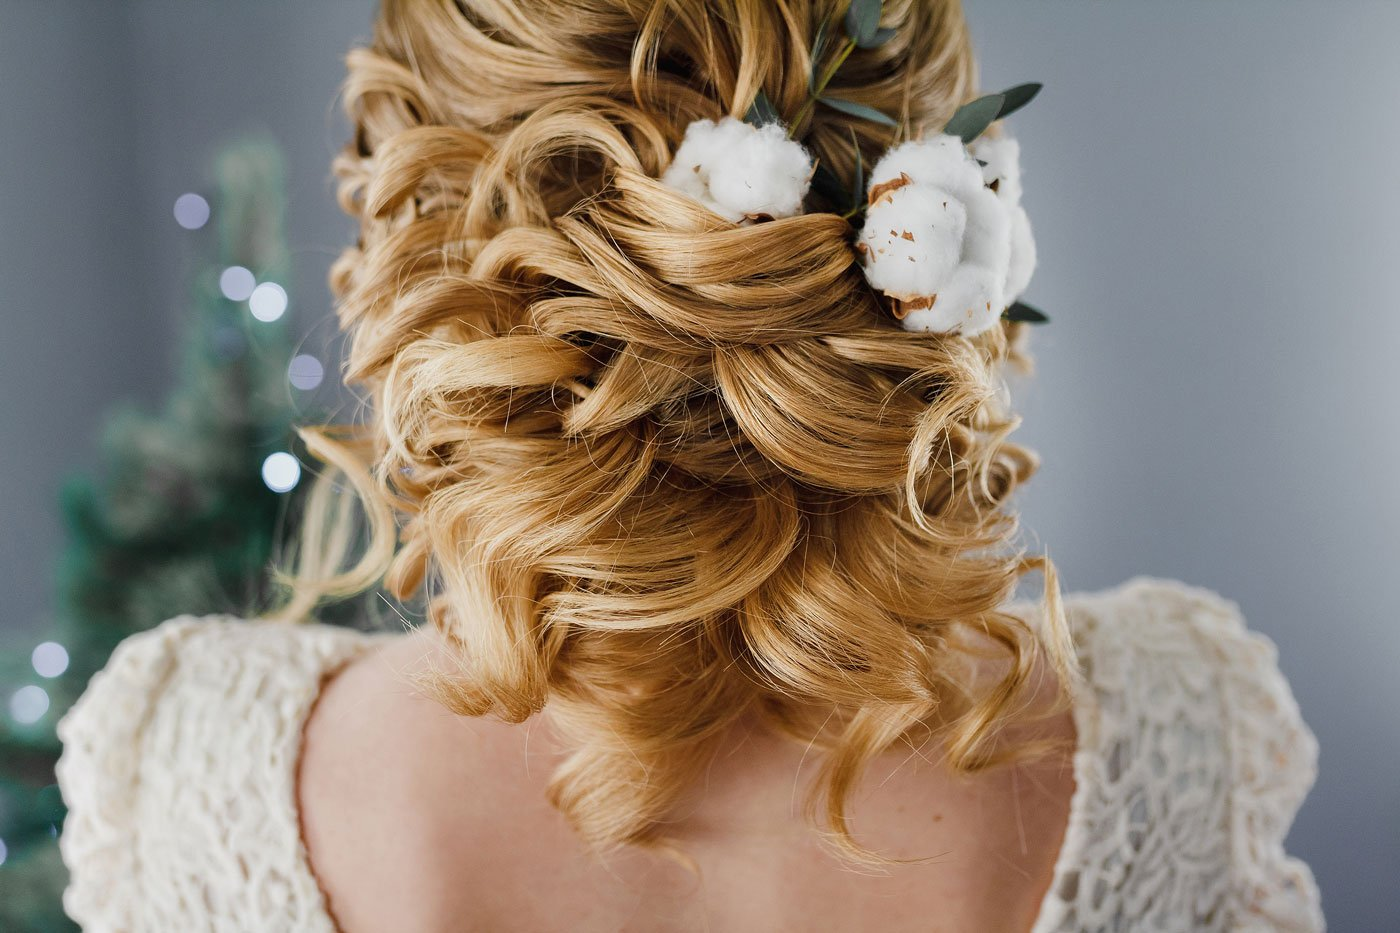 Bride hairstyles by professionals